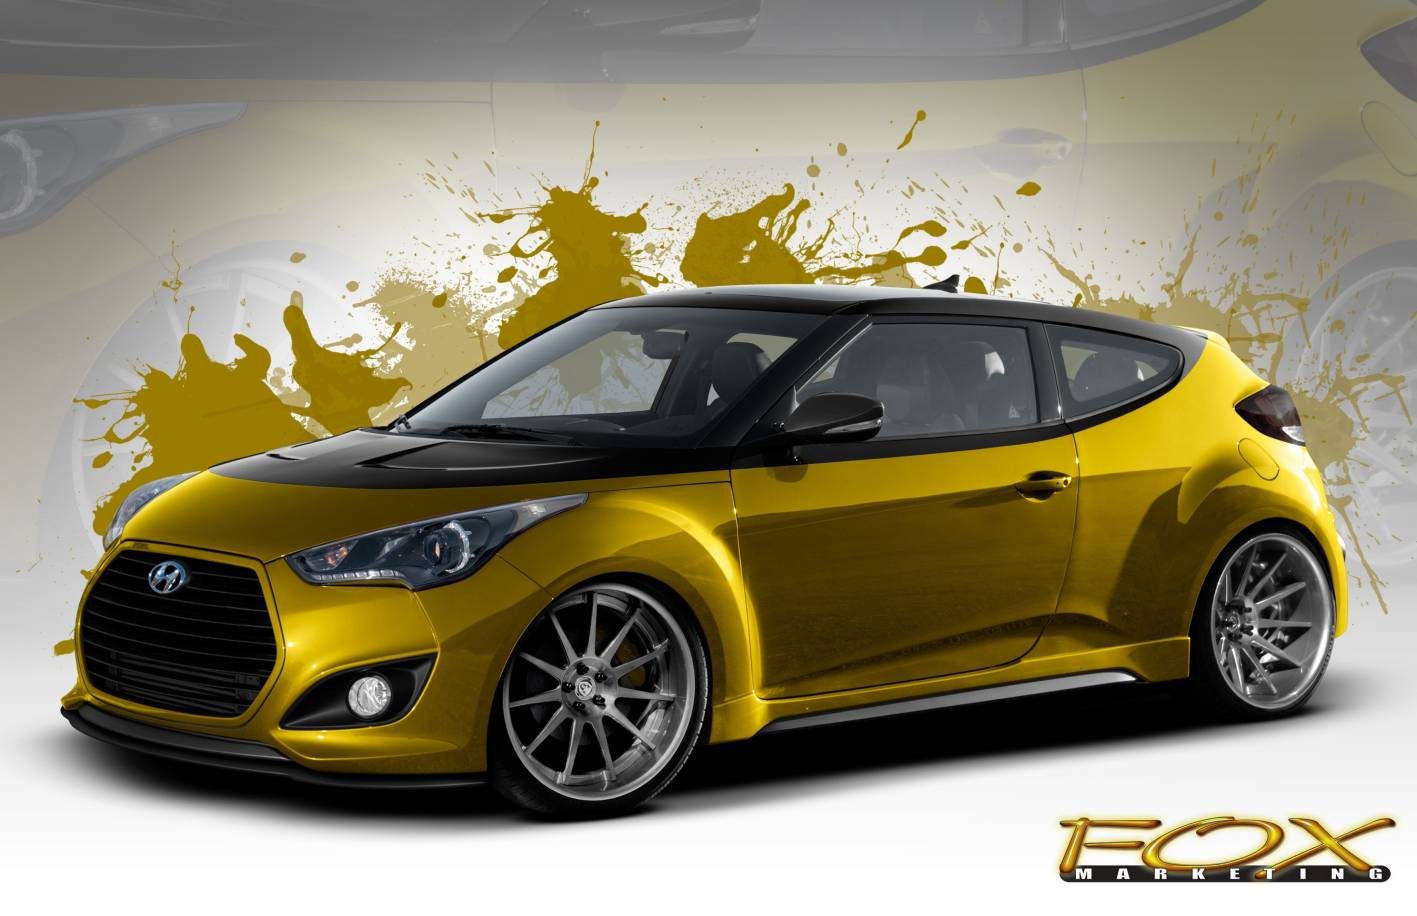 Hyundai Cars News 276kw Veloster Turbo For Sema Show